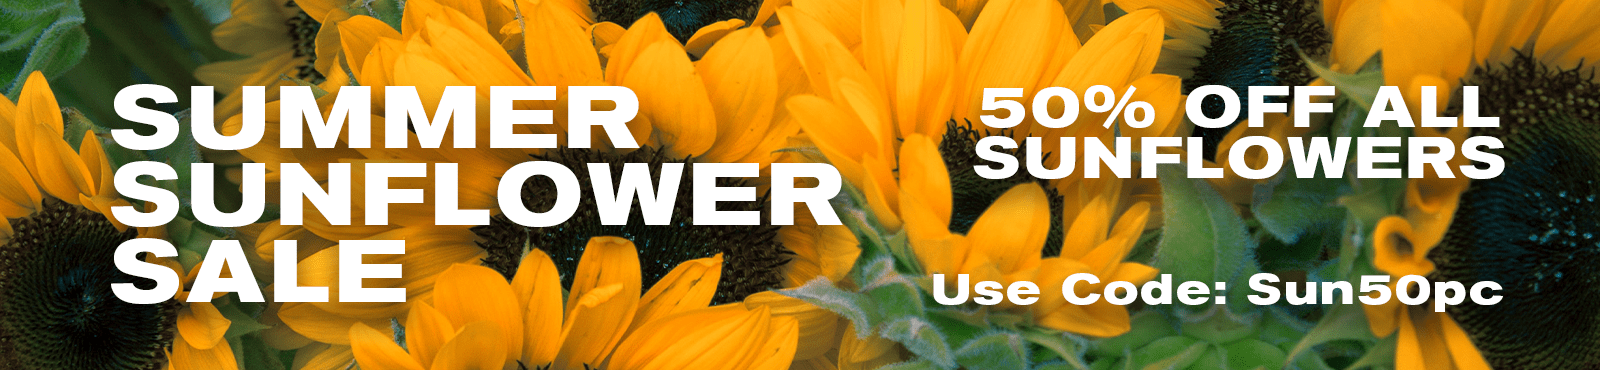 All SUNFLOWER ARRANGEMENTS are 50% OFF, use the code Sun50pc